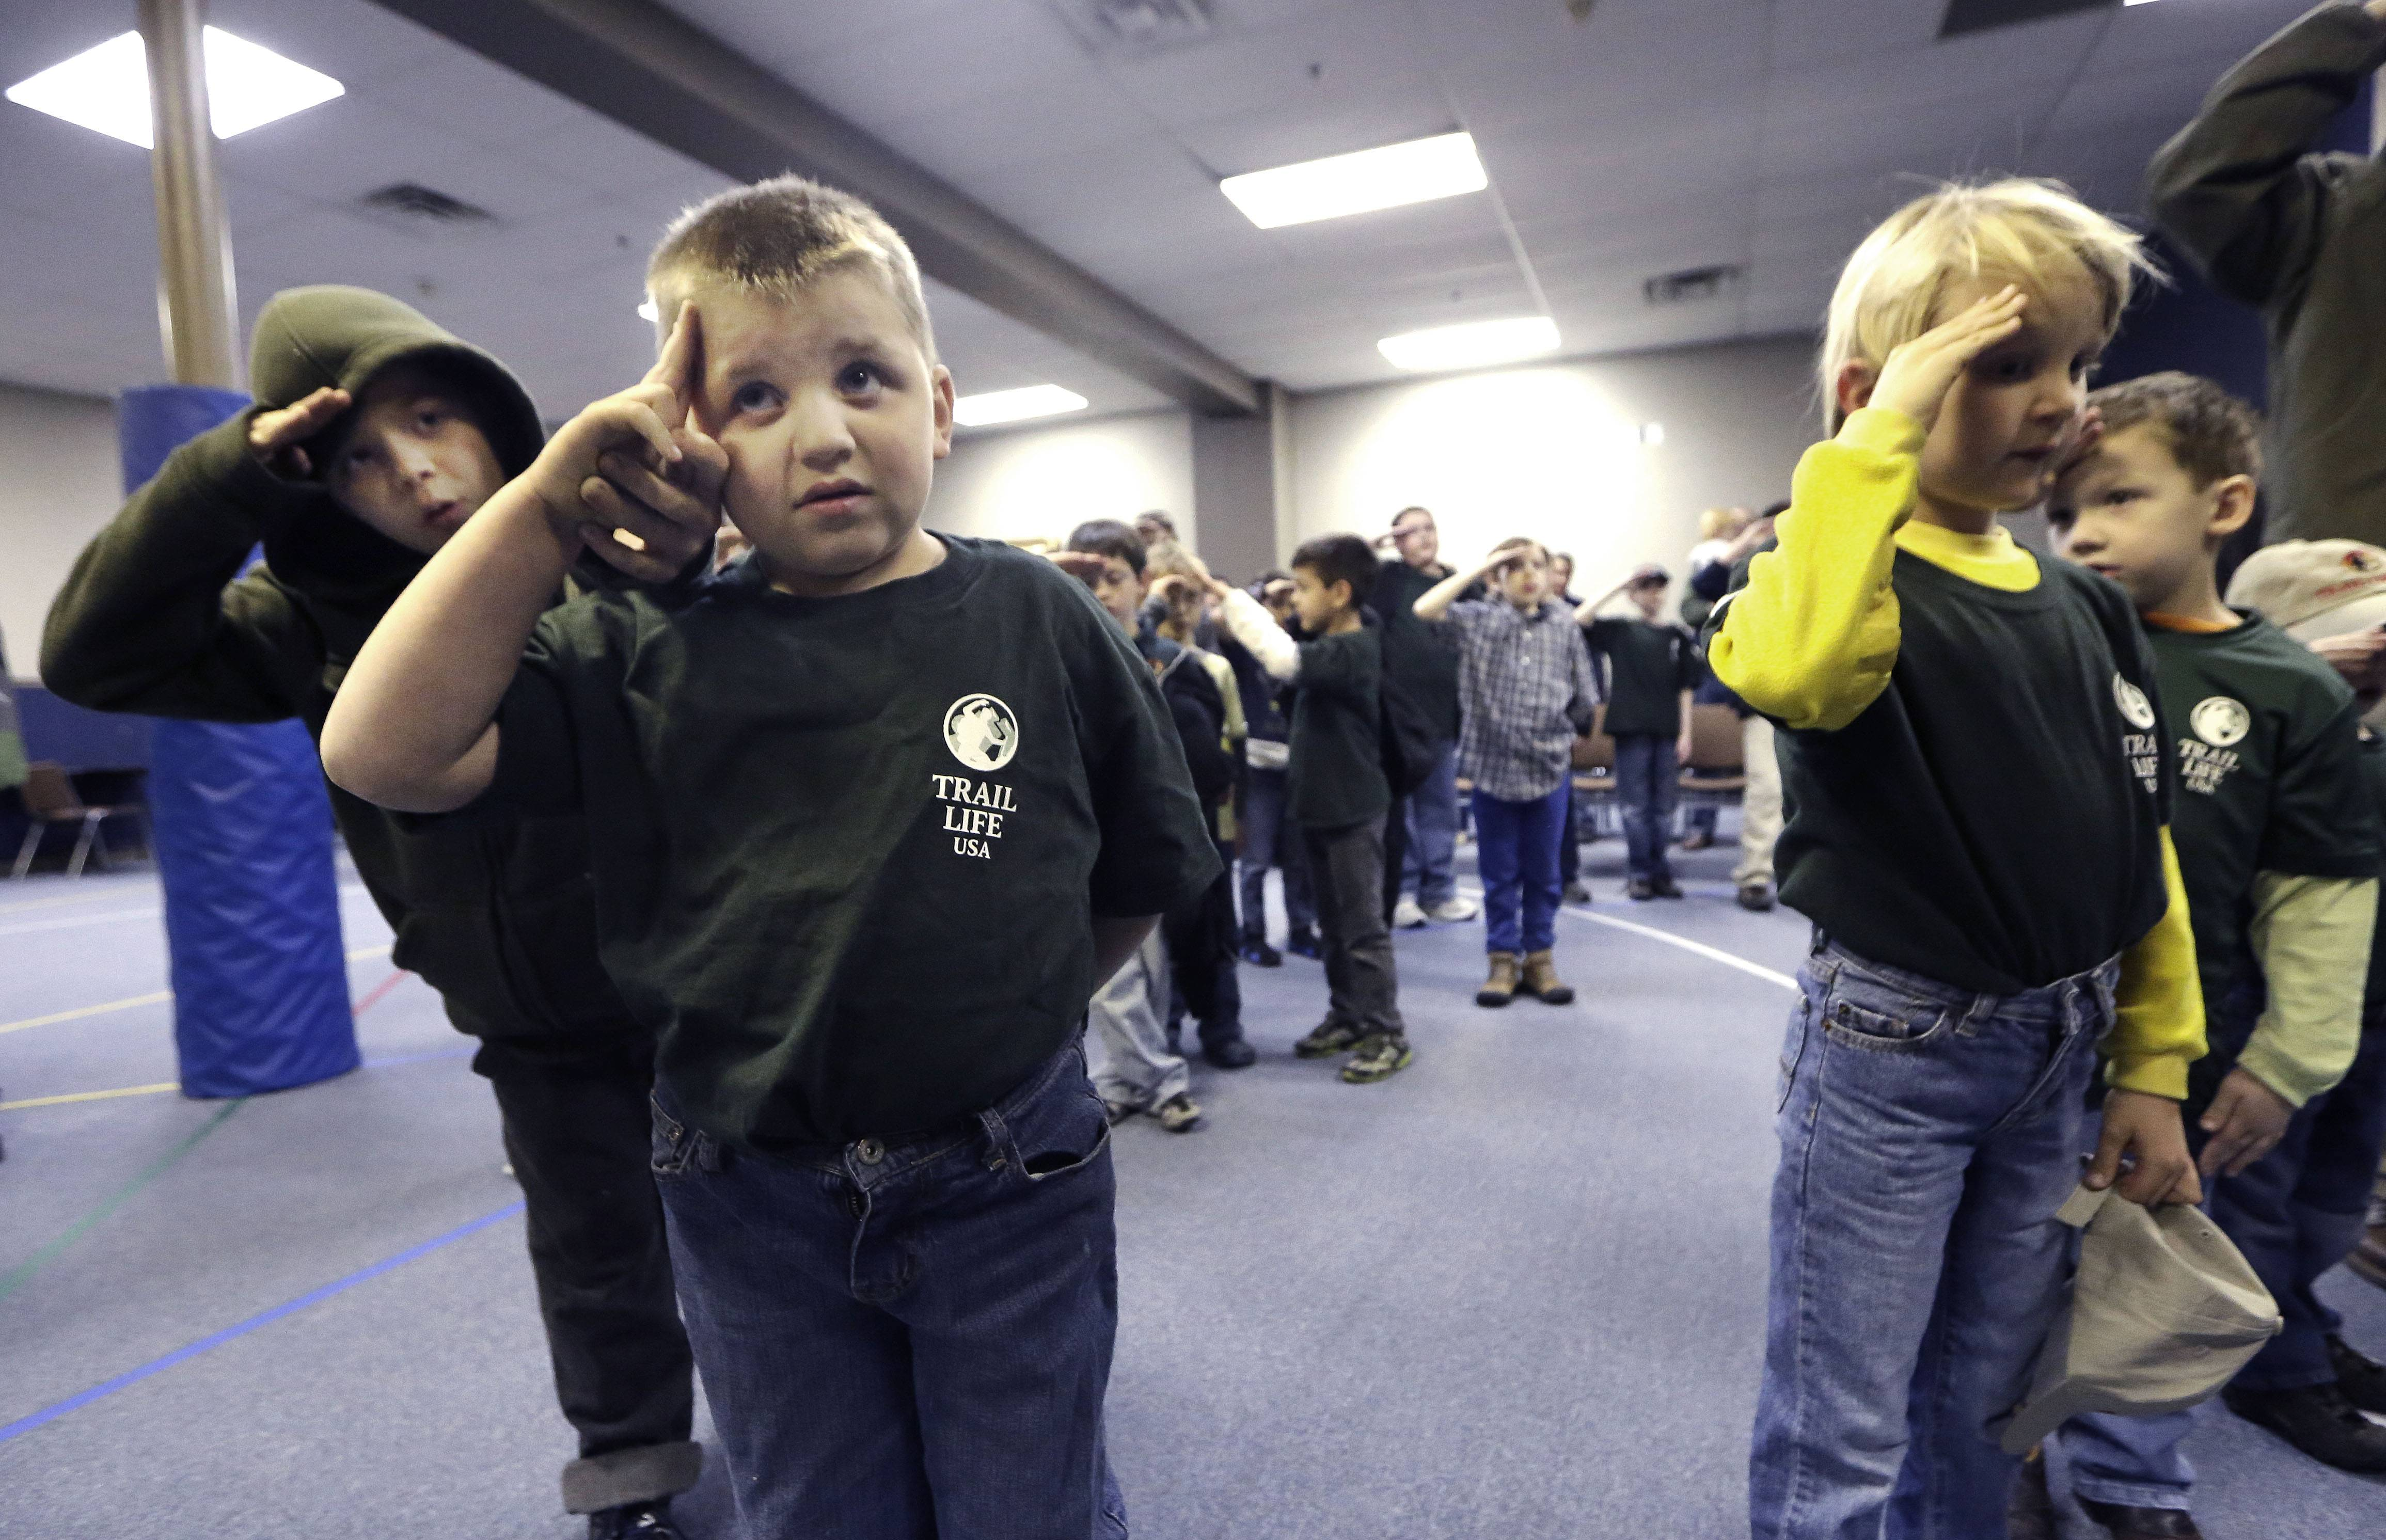 In this Tuesday, Feb. 4, 2014 photo, Trail Life member Adrian McCade, 7, second from left, gets direction on hand placement for the salute from his older brother Jack McCade, 8, during a group meeting in North Richland Hills, Texas. John Stemberger, an Orlando, Fla. lawyer who led the opposition to the Boy Scouts of America's May 2013 vote to accept openly gay youth, went on to found Trail Life.